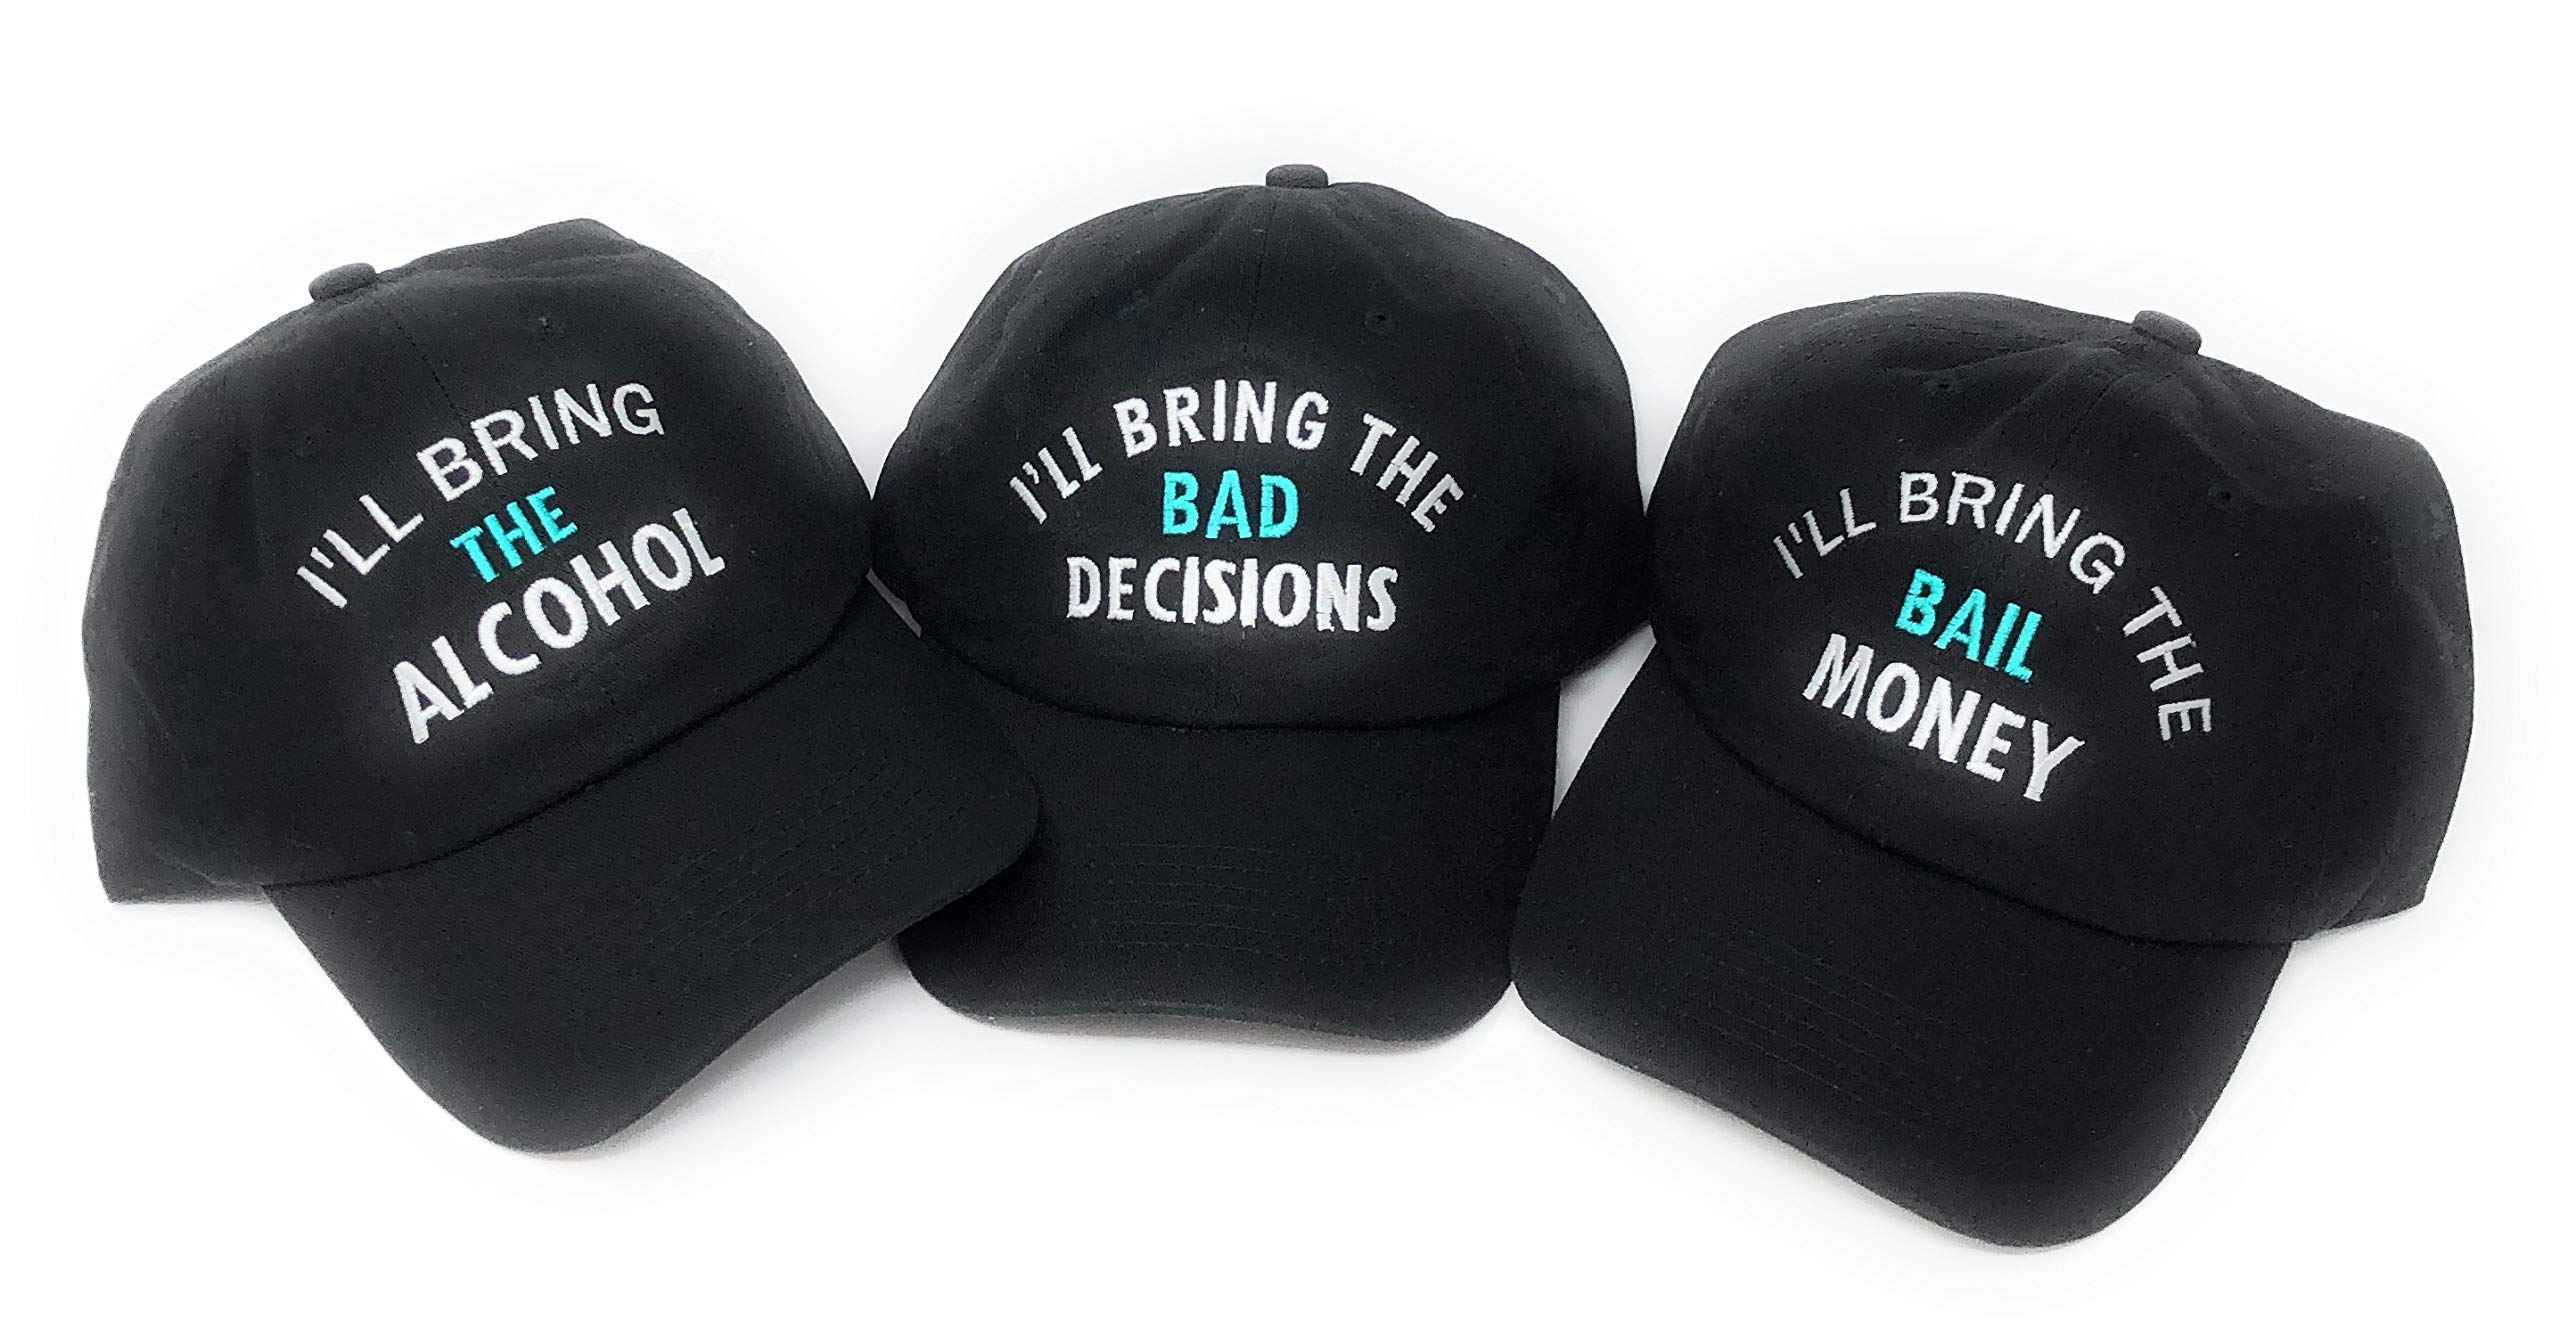 Mary's Monograms I'll Bring The Bad Decision/Alcohol/Bail Money Baseball Hats Set of 3 True Black